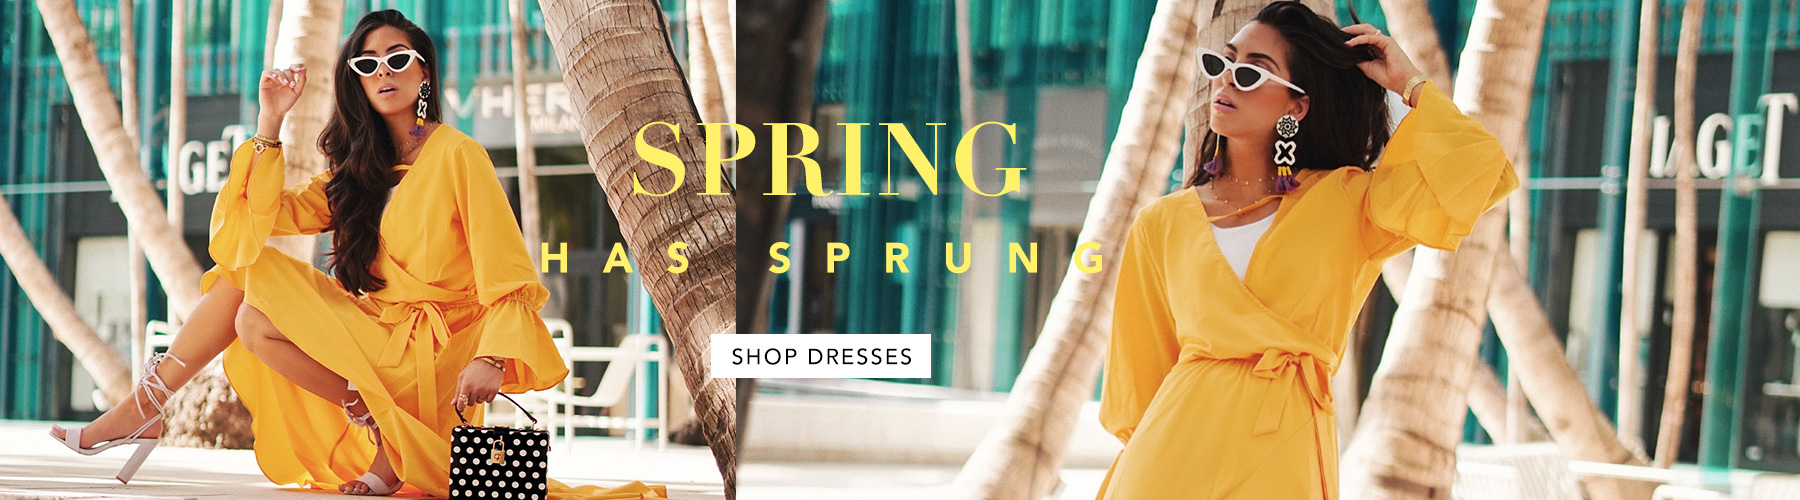 Spring has Sprung Shop Dresses